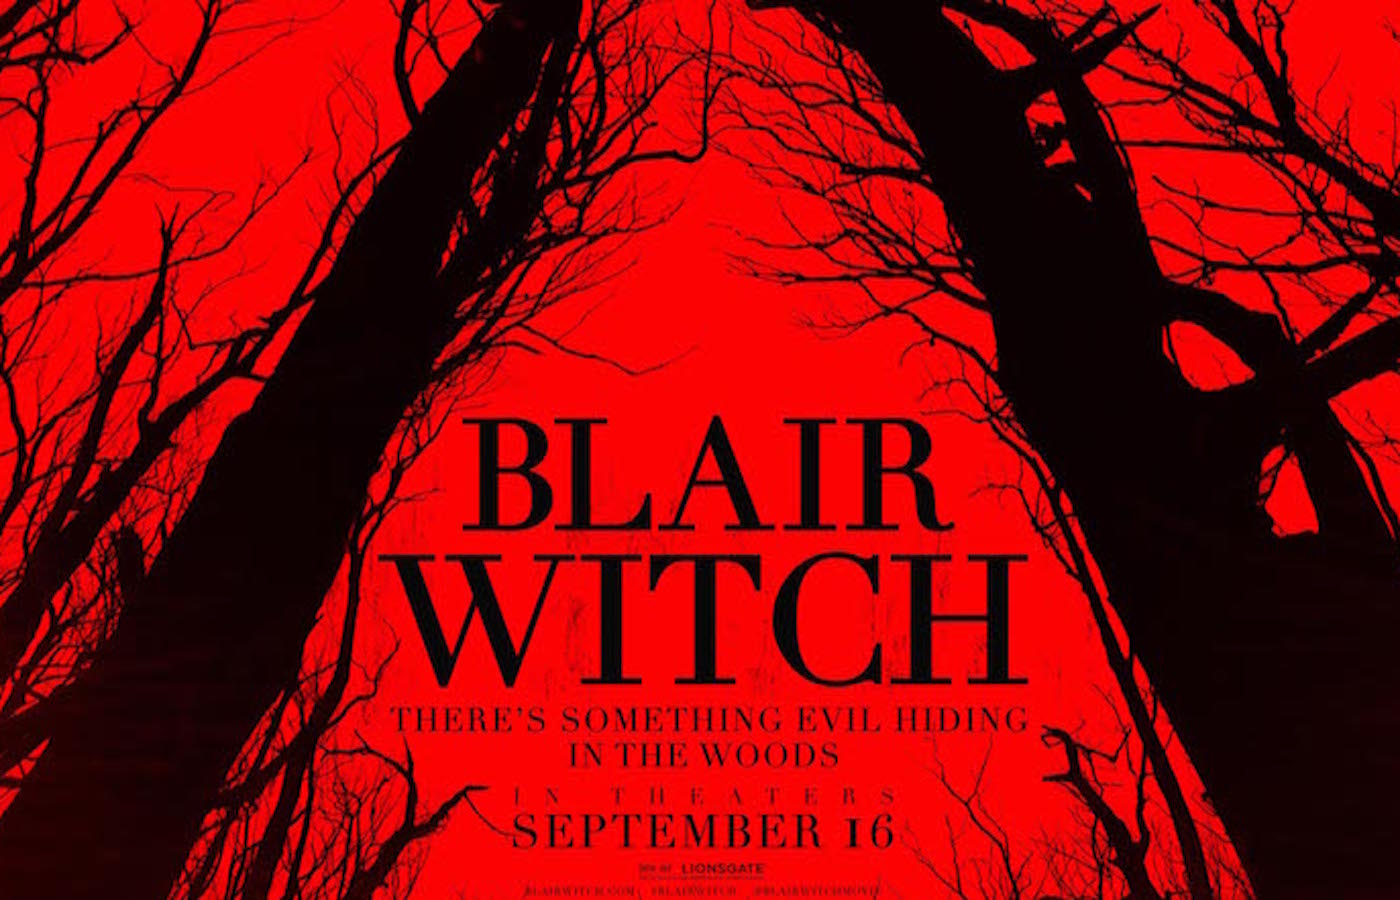 Blair witch the woods poster